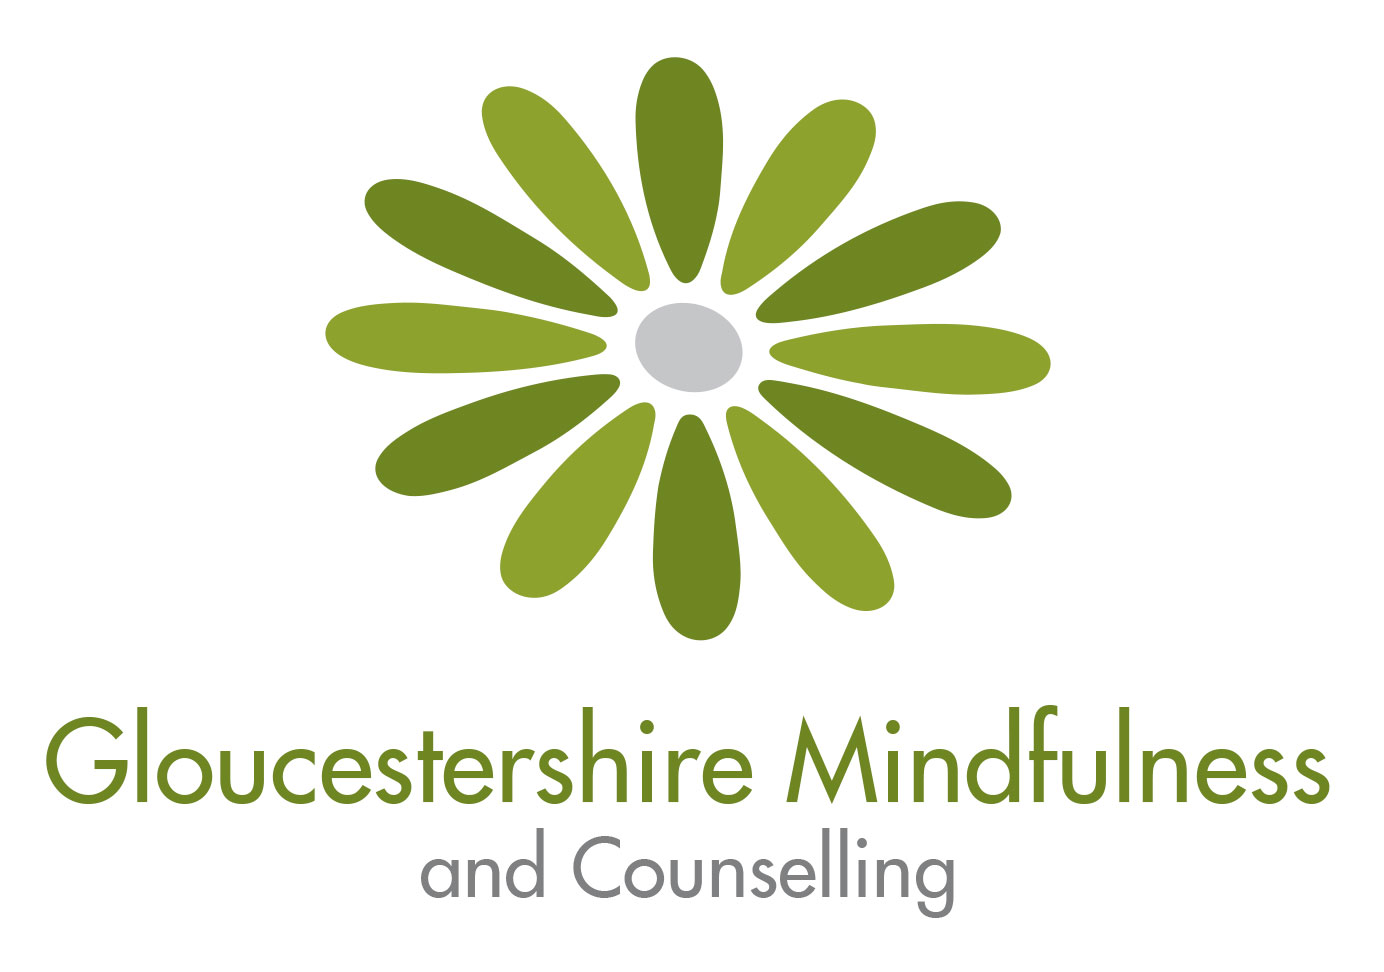 Gloucestershire Mindfulness and Counselling